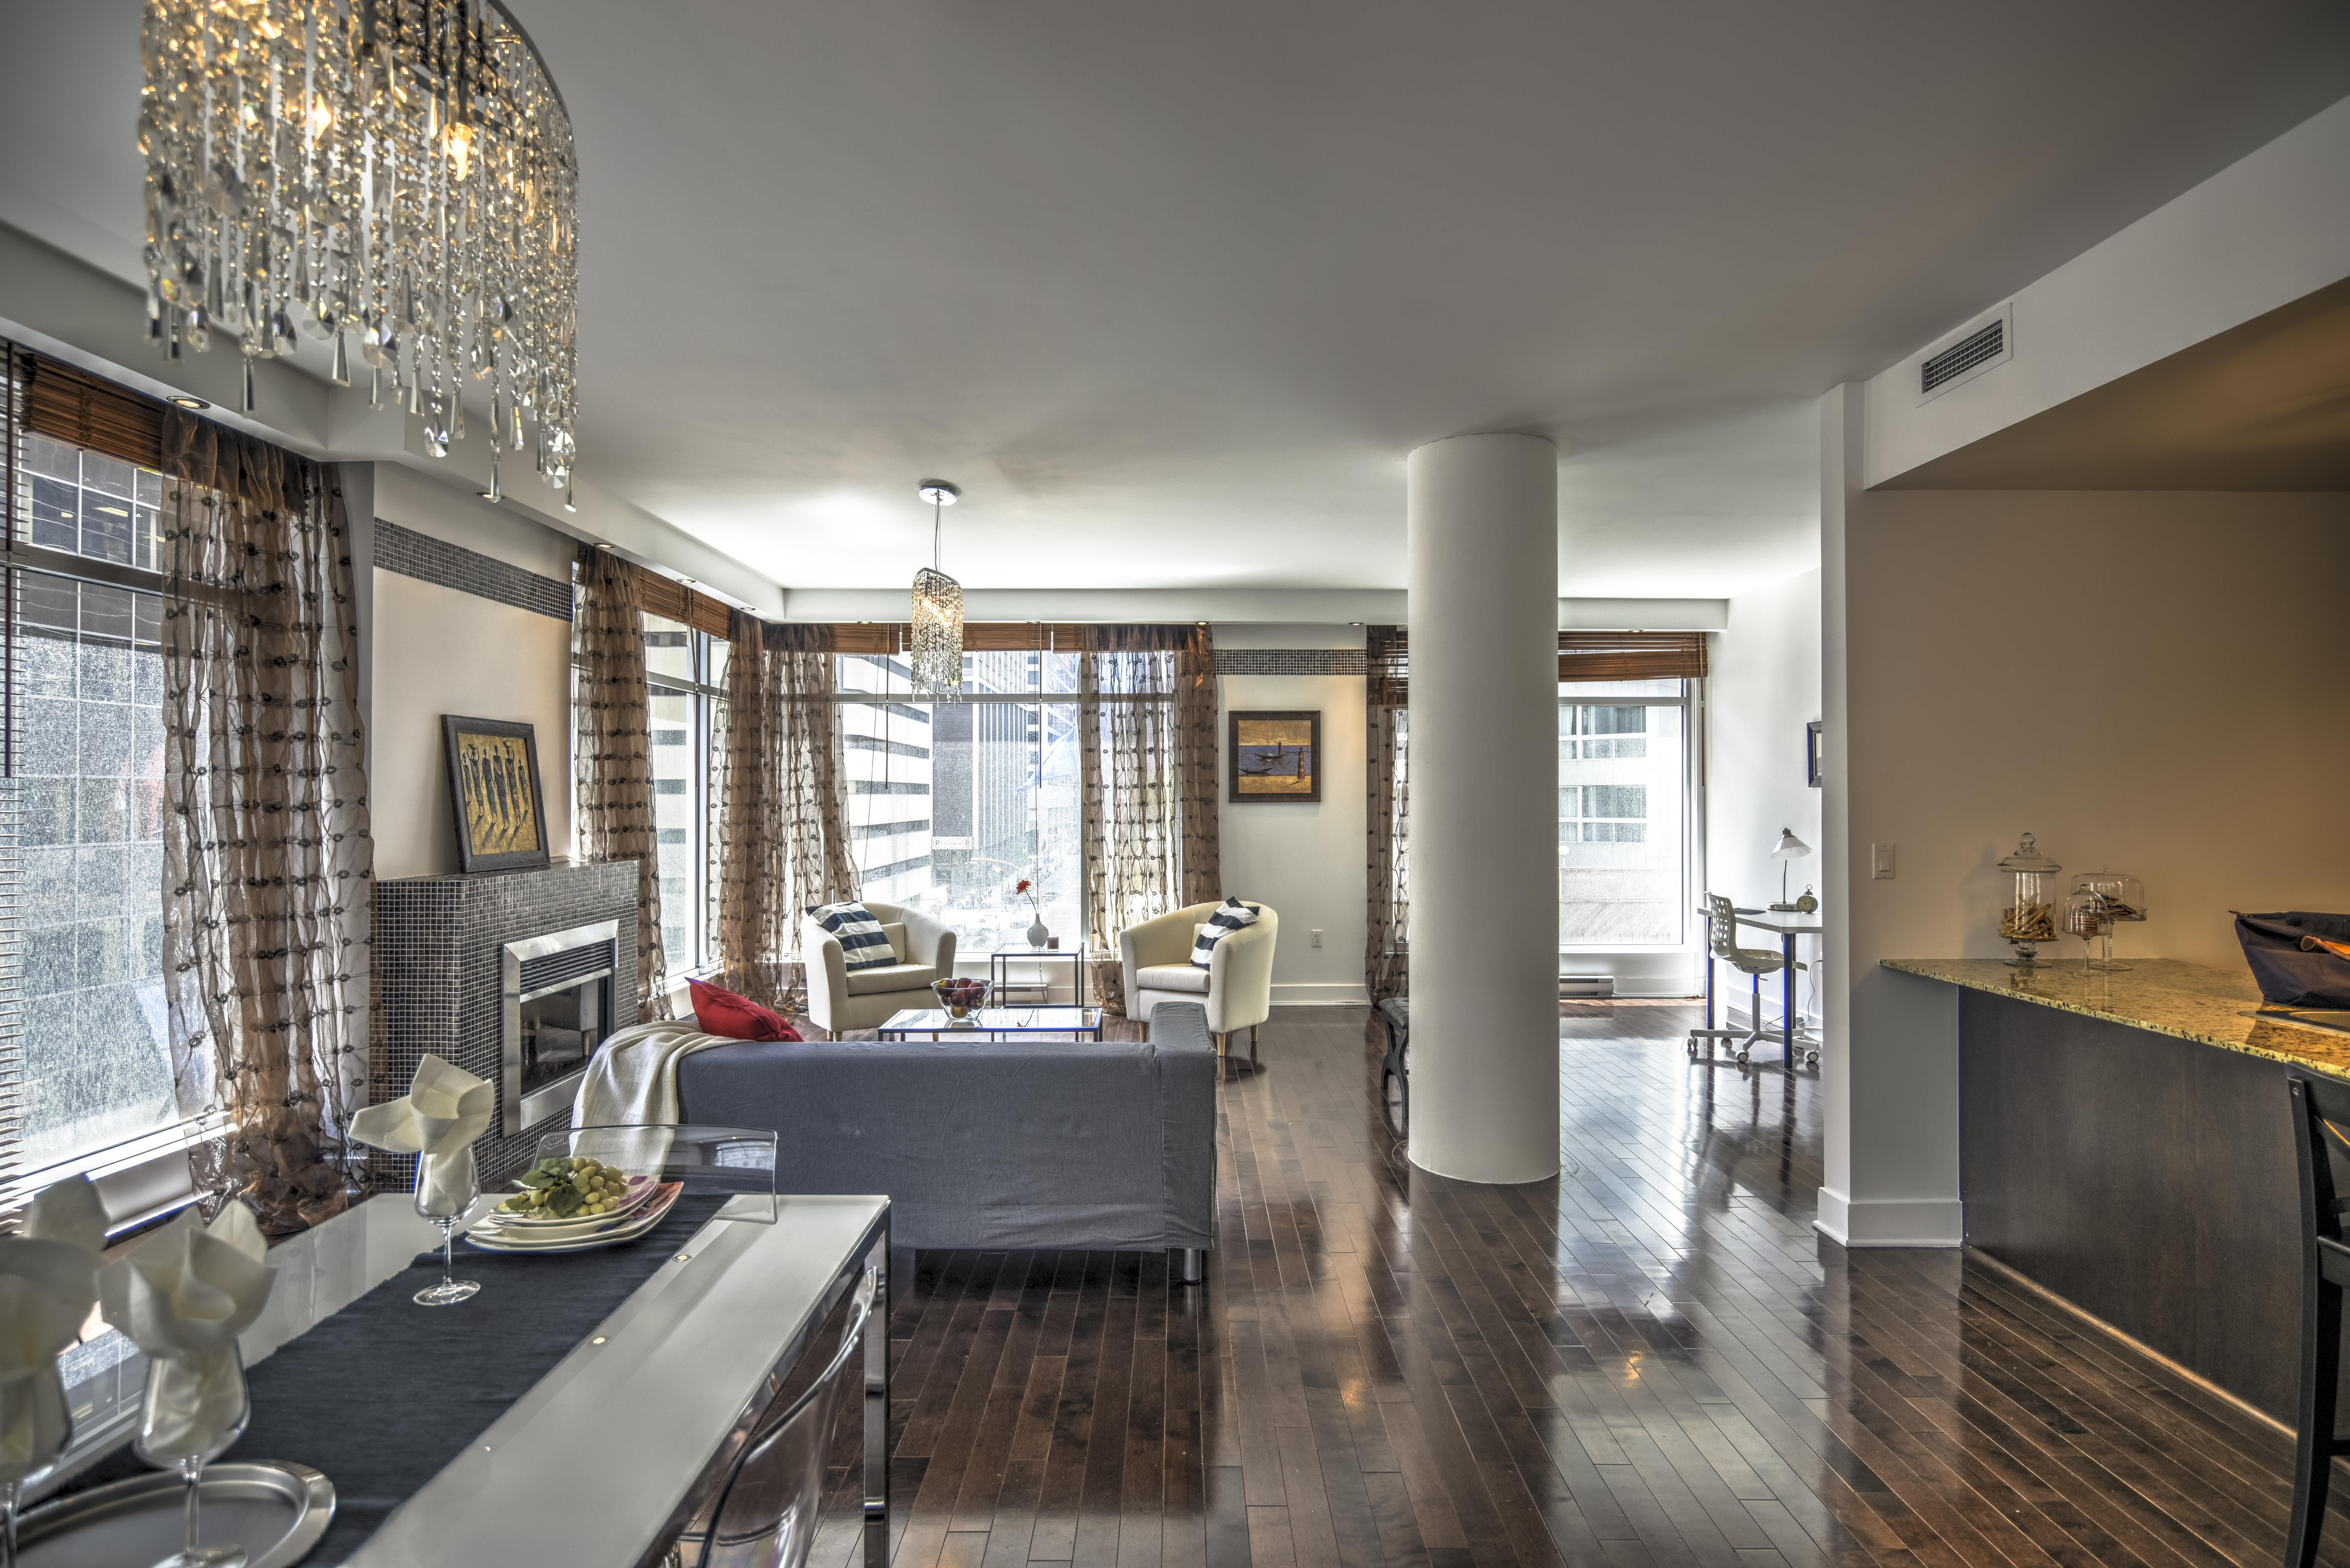 441 Ave du President-Kennedy, apt 408. Beautiful, spacious corner condo. Marie Paule Lancup, Realtor.